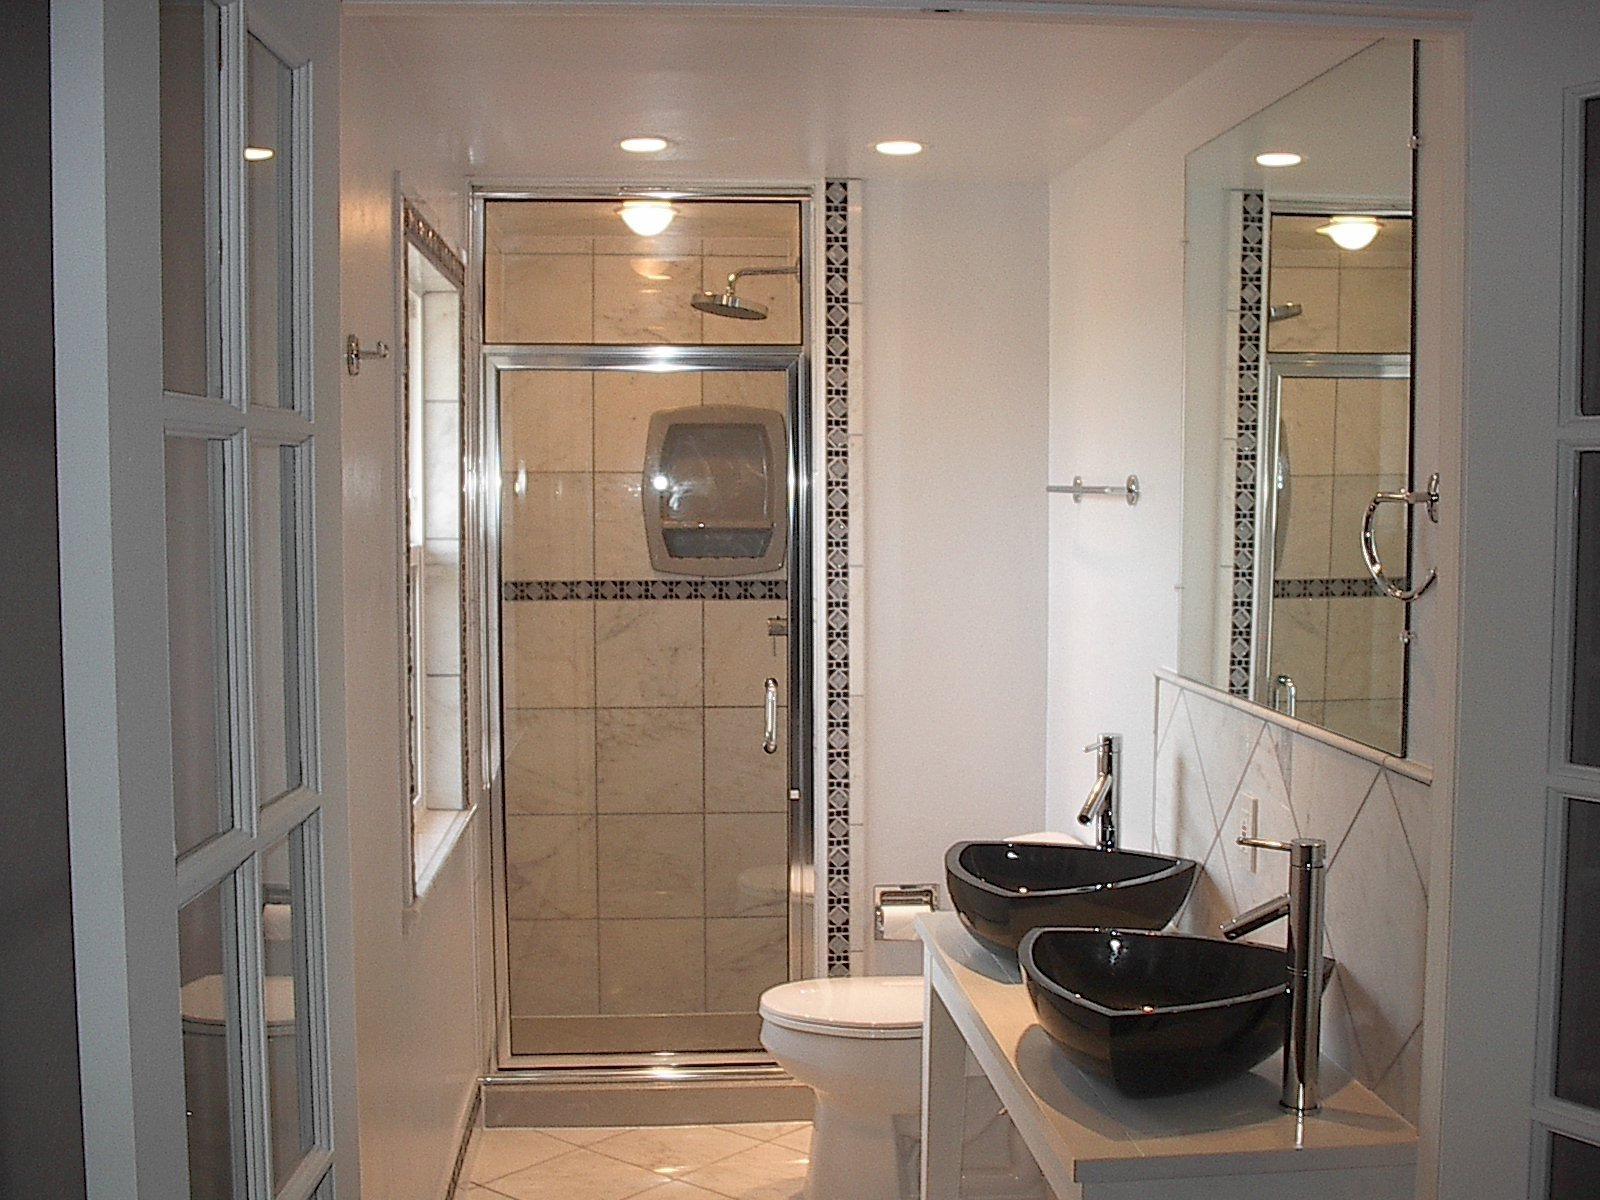 10 Nice Remodeling Bathroom Ideas For Small Bathrooms bunch ideas of wonderful remodeling bathroom ideas for small 2020